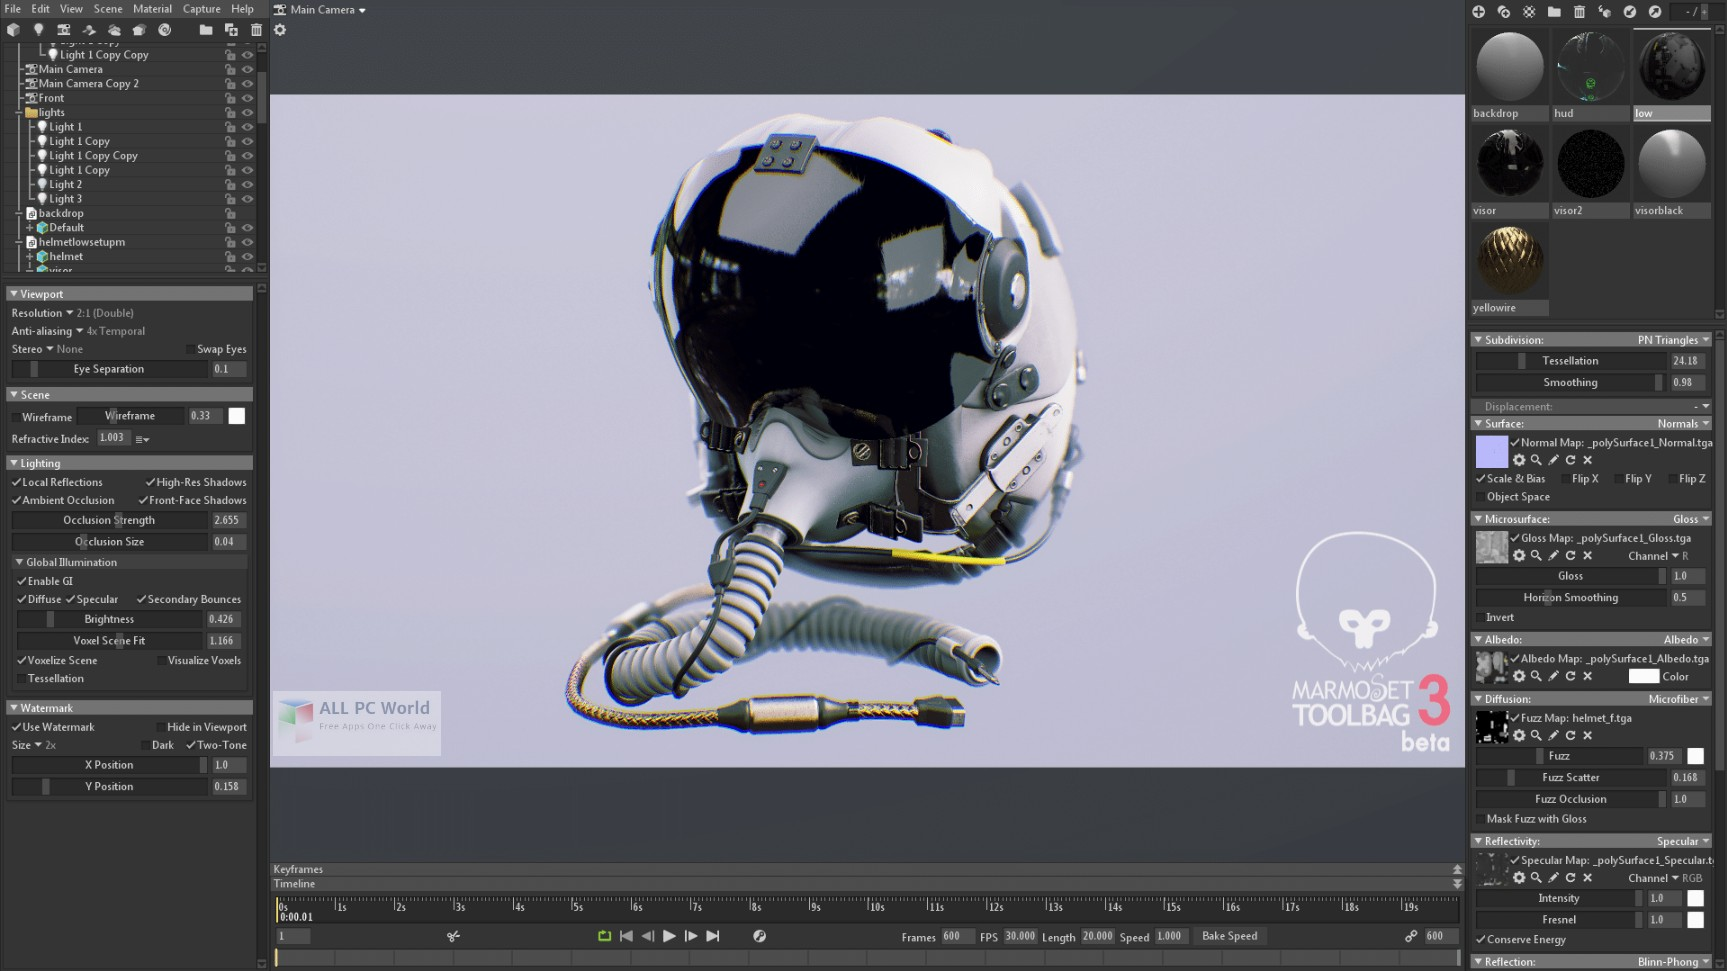 Marmoset Toolbag 3.0 Free Download